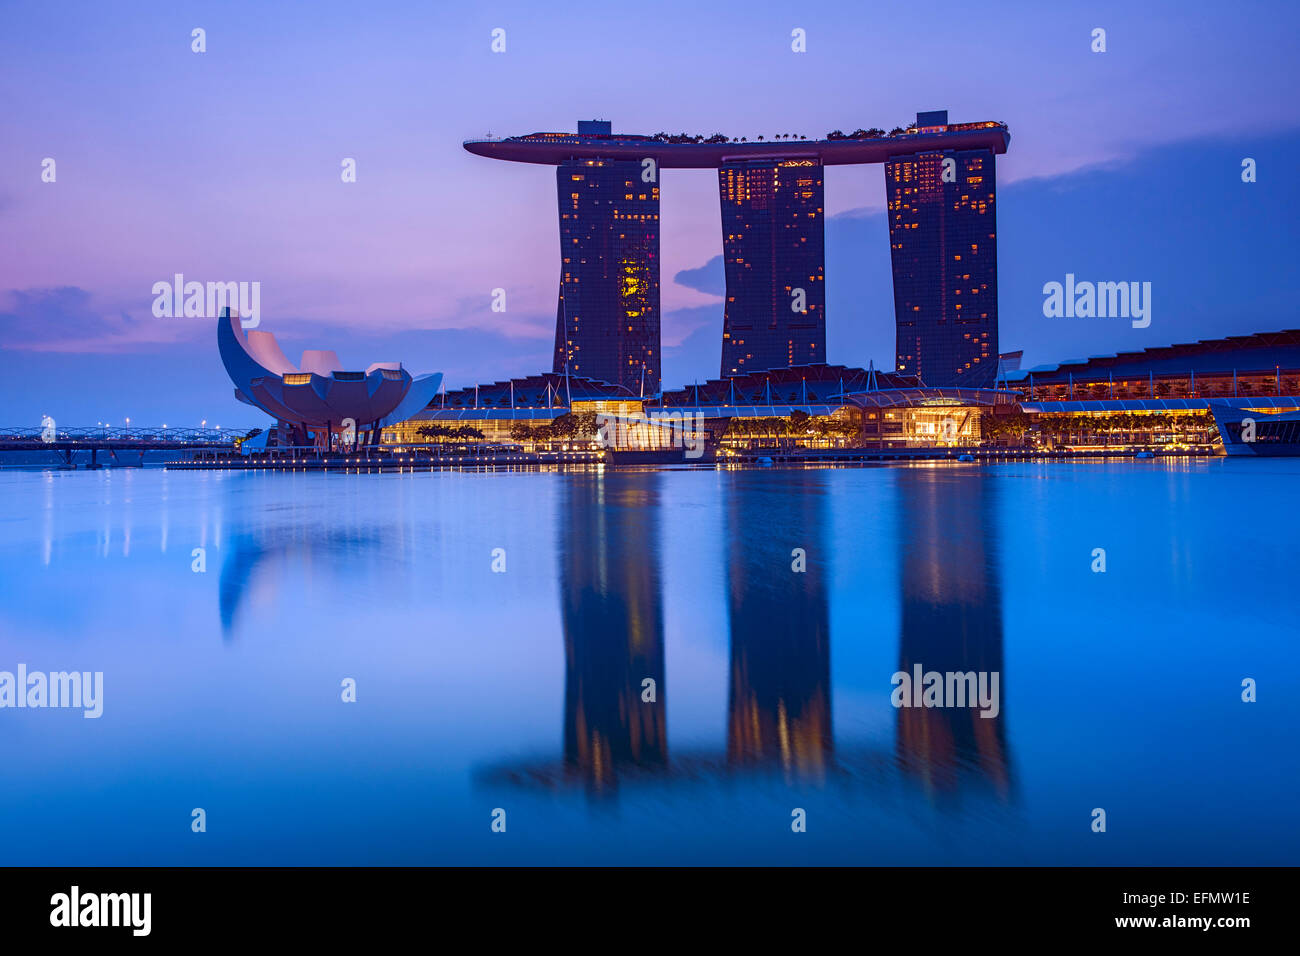 The Marina Bay Sands Hotel and the Art Science museum in Singapore at dawn. - Stock Image